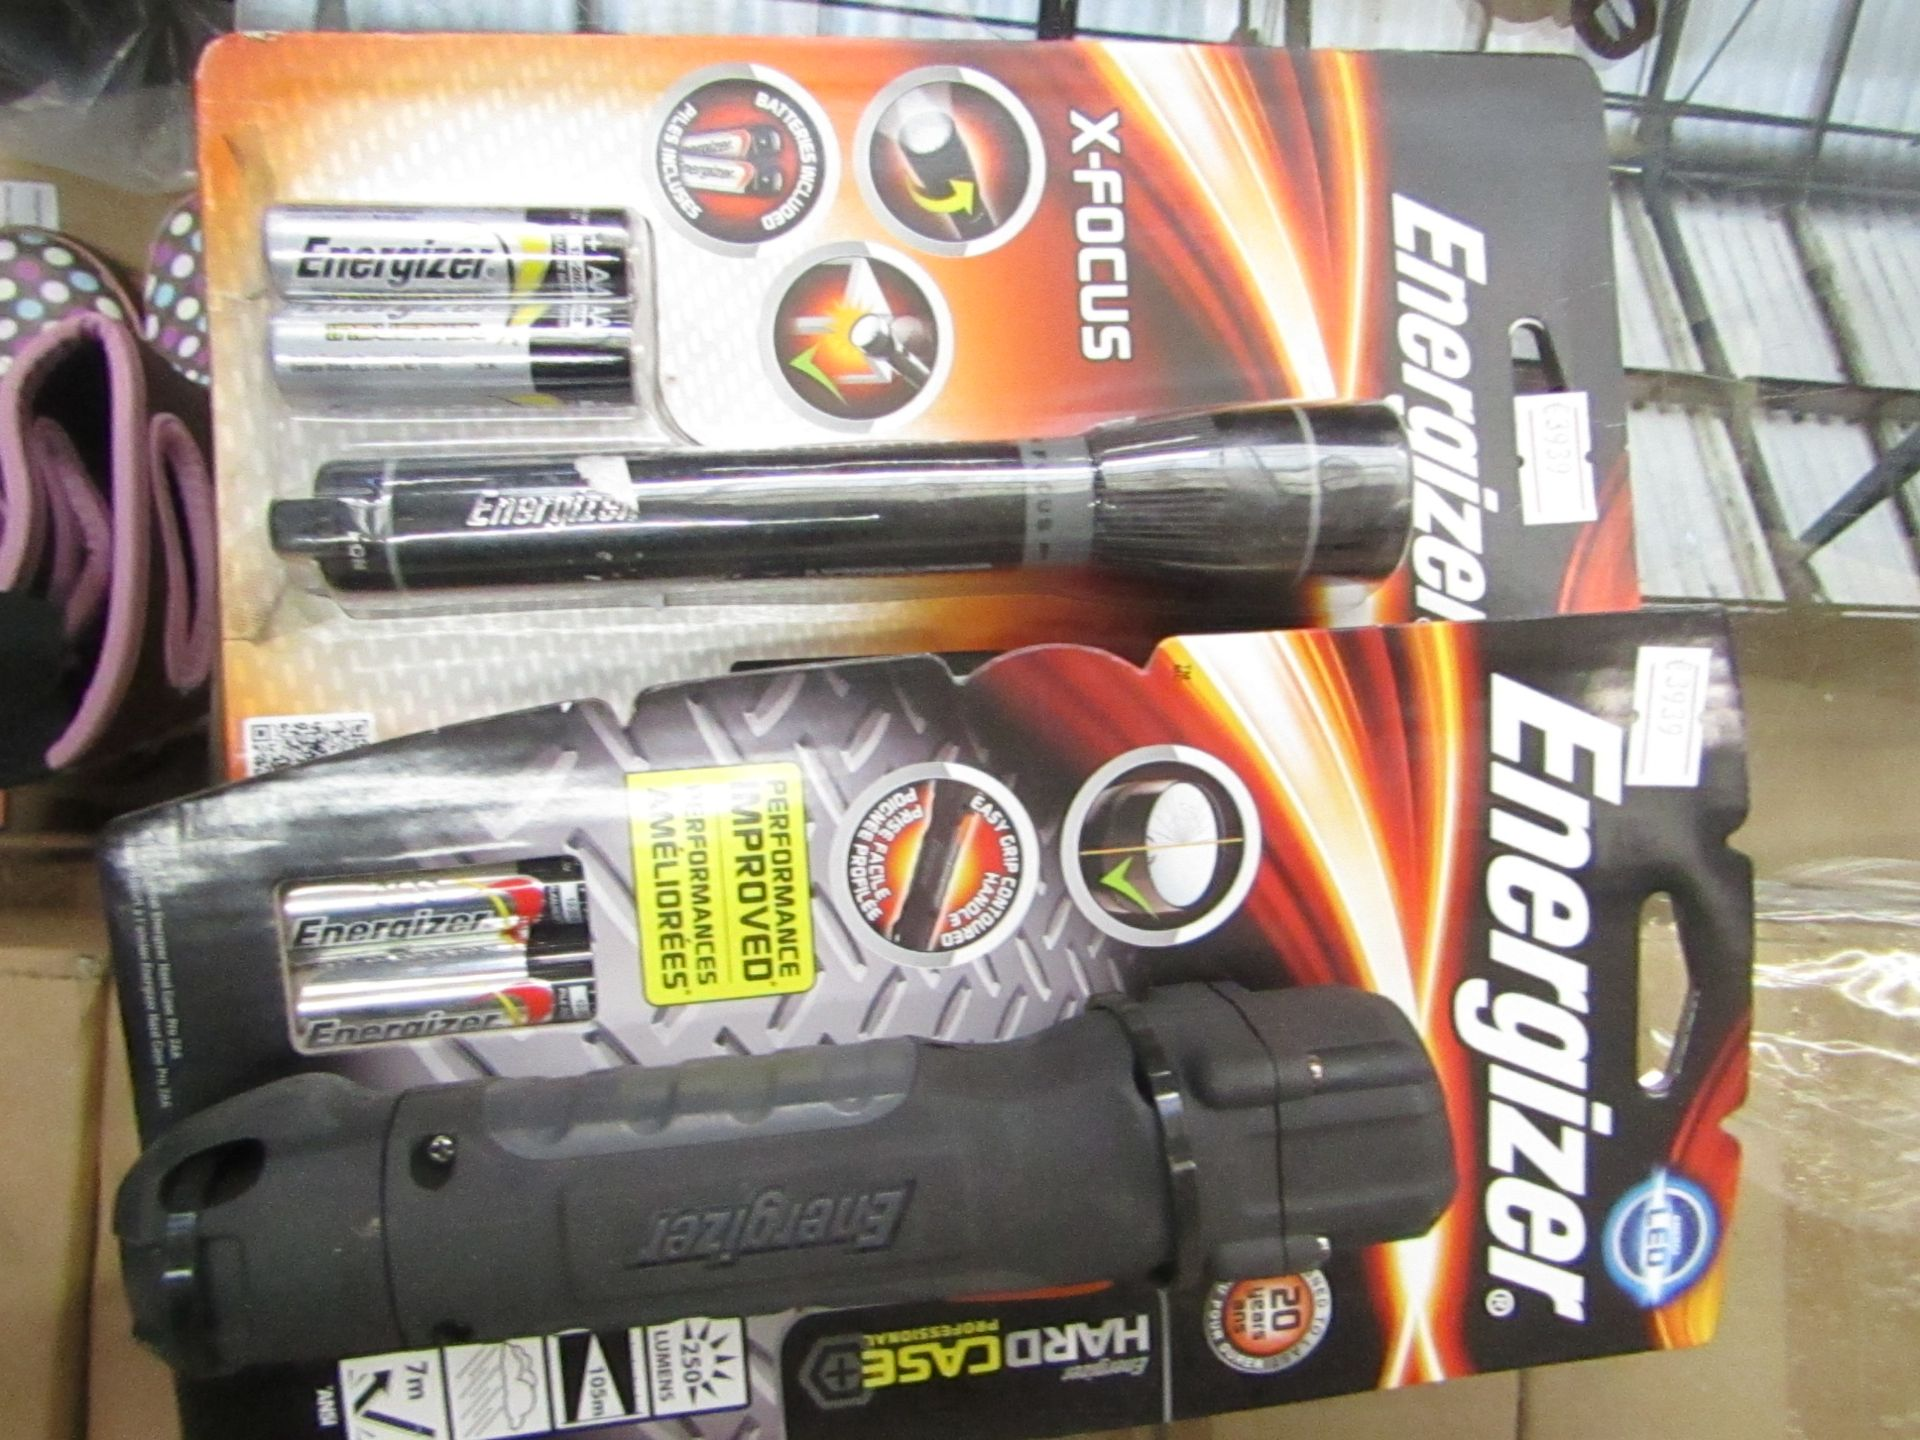 Lot 43 - 2 items being 1 x Energizer Hard Case professional LED torch & 1 x Energizer X Focus Torch both new